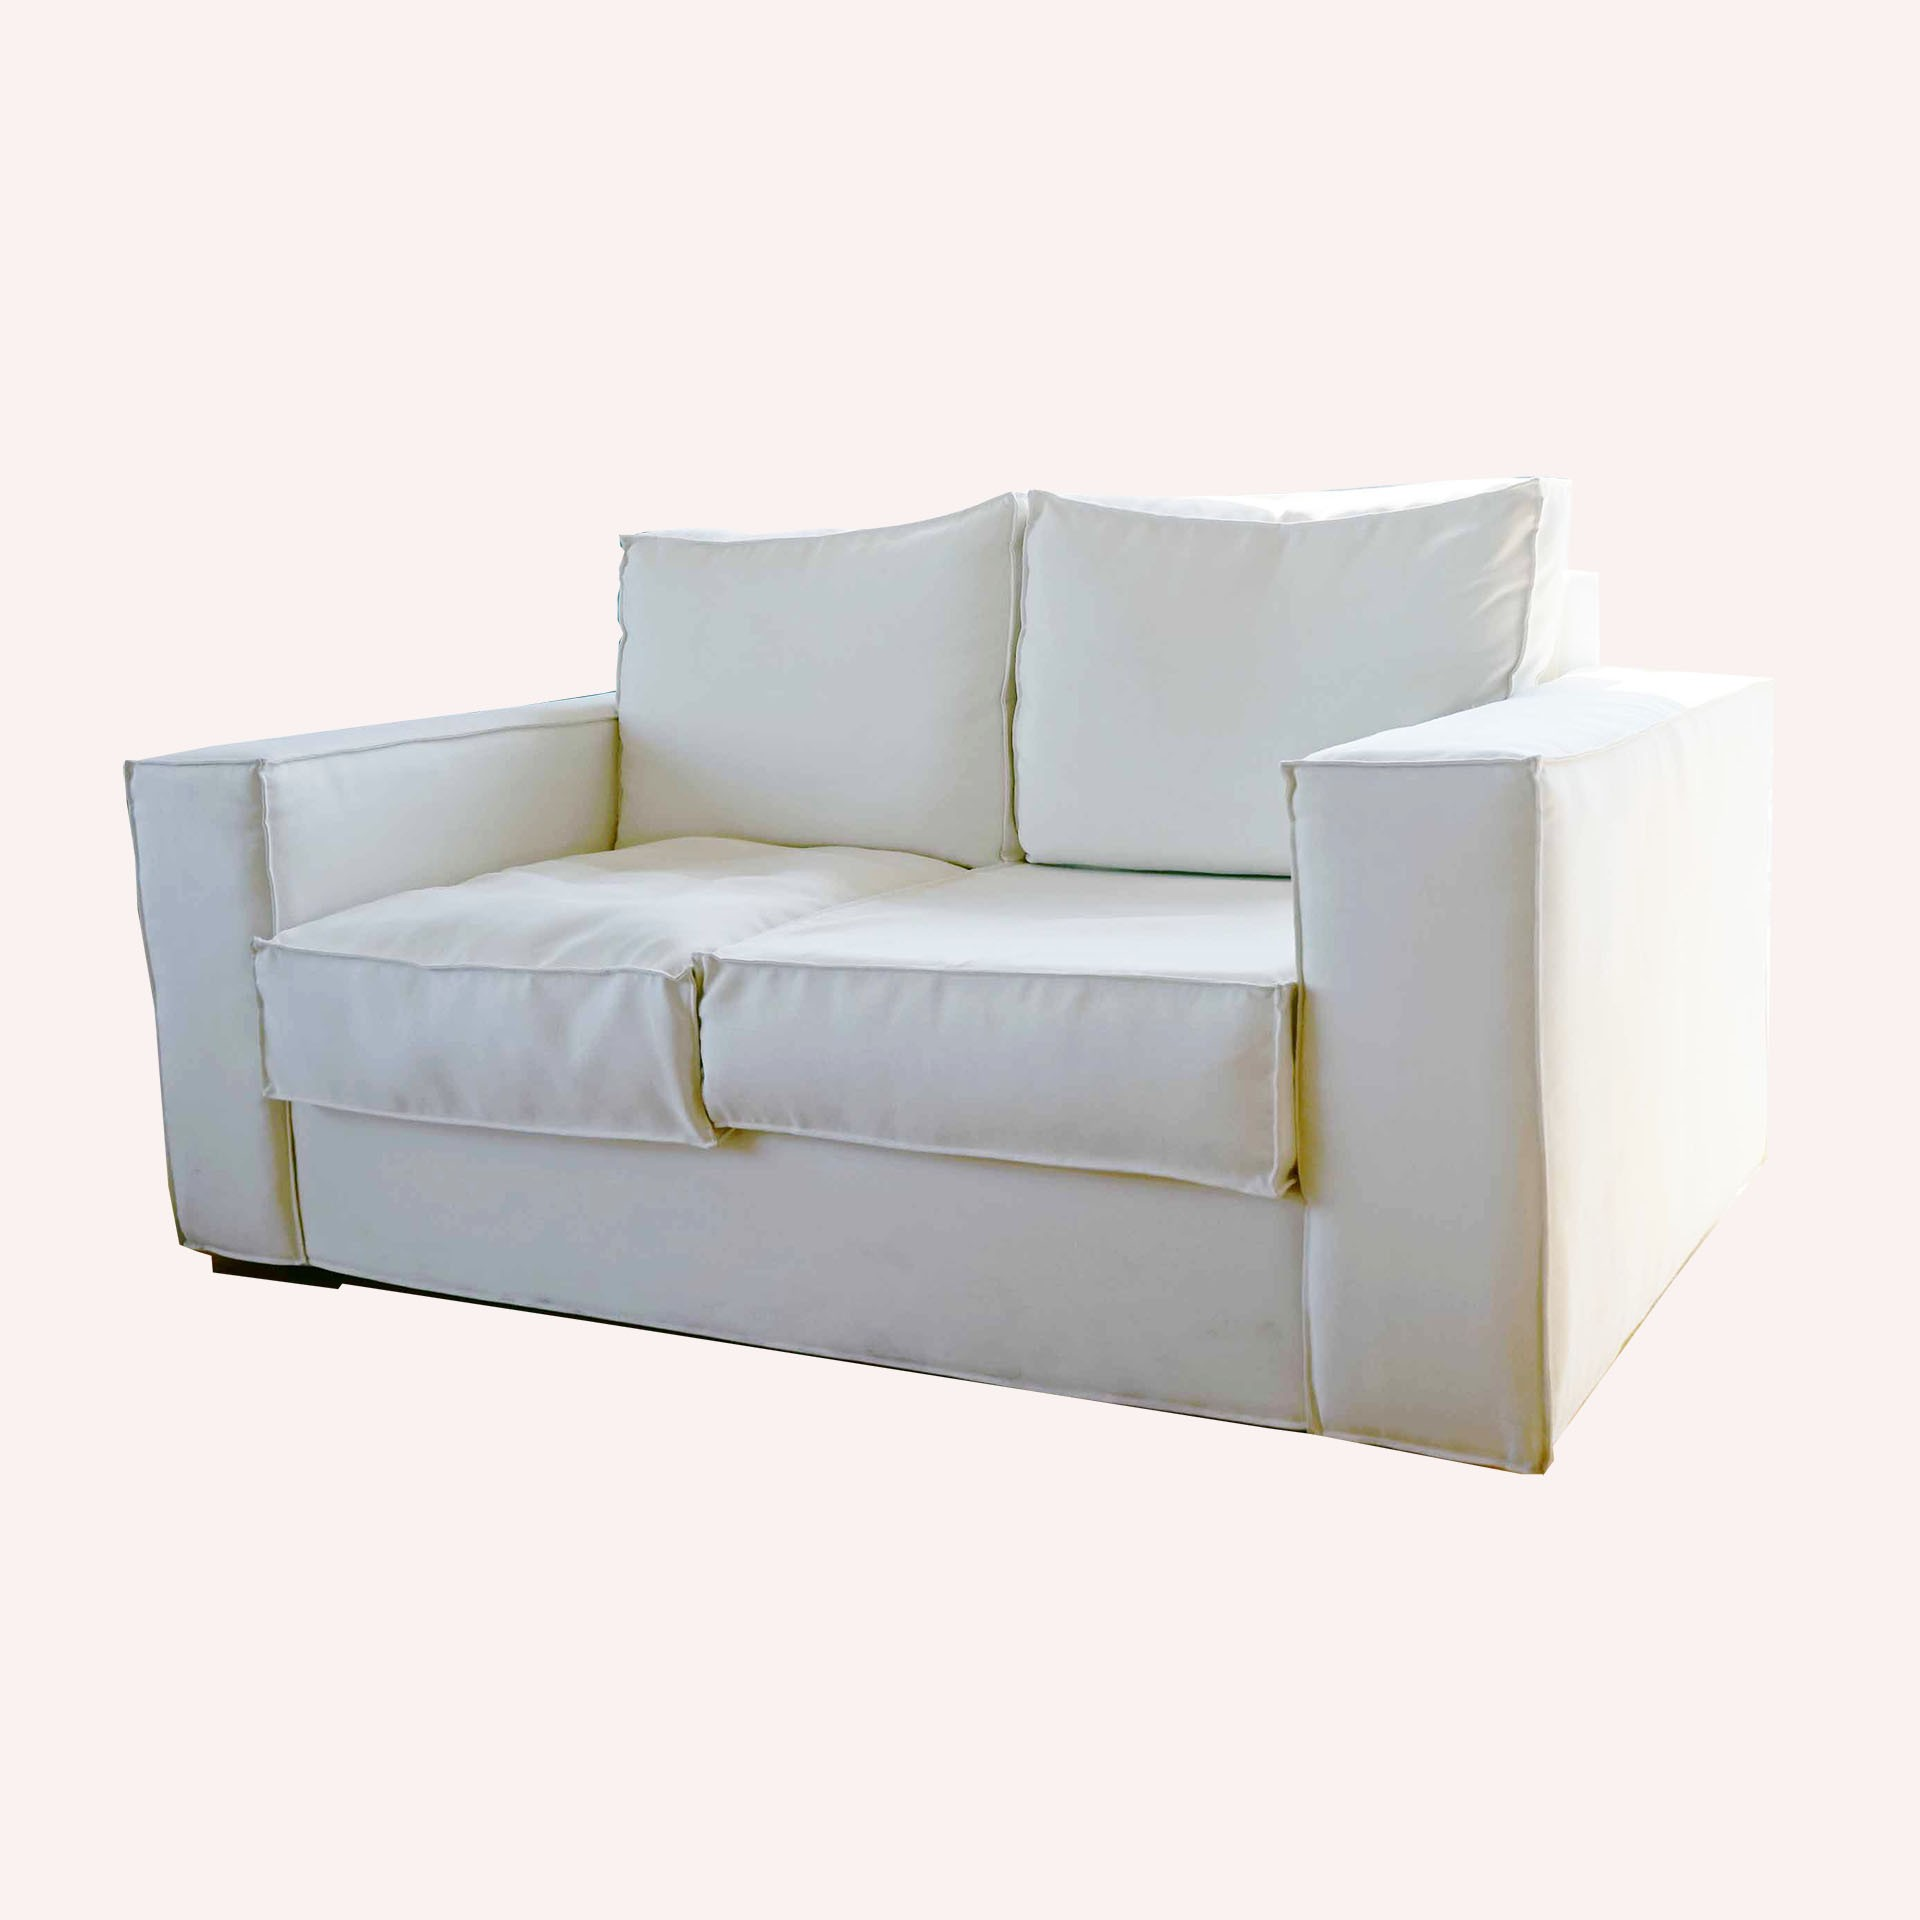 Bettsofa Coco 2er Sofa Haris